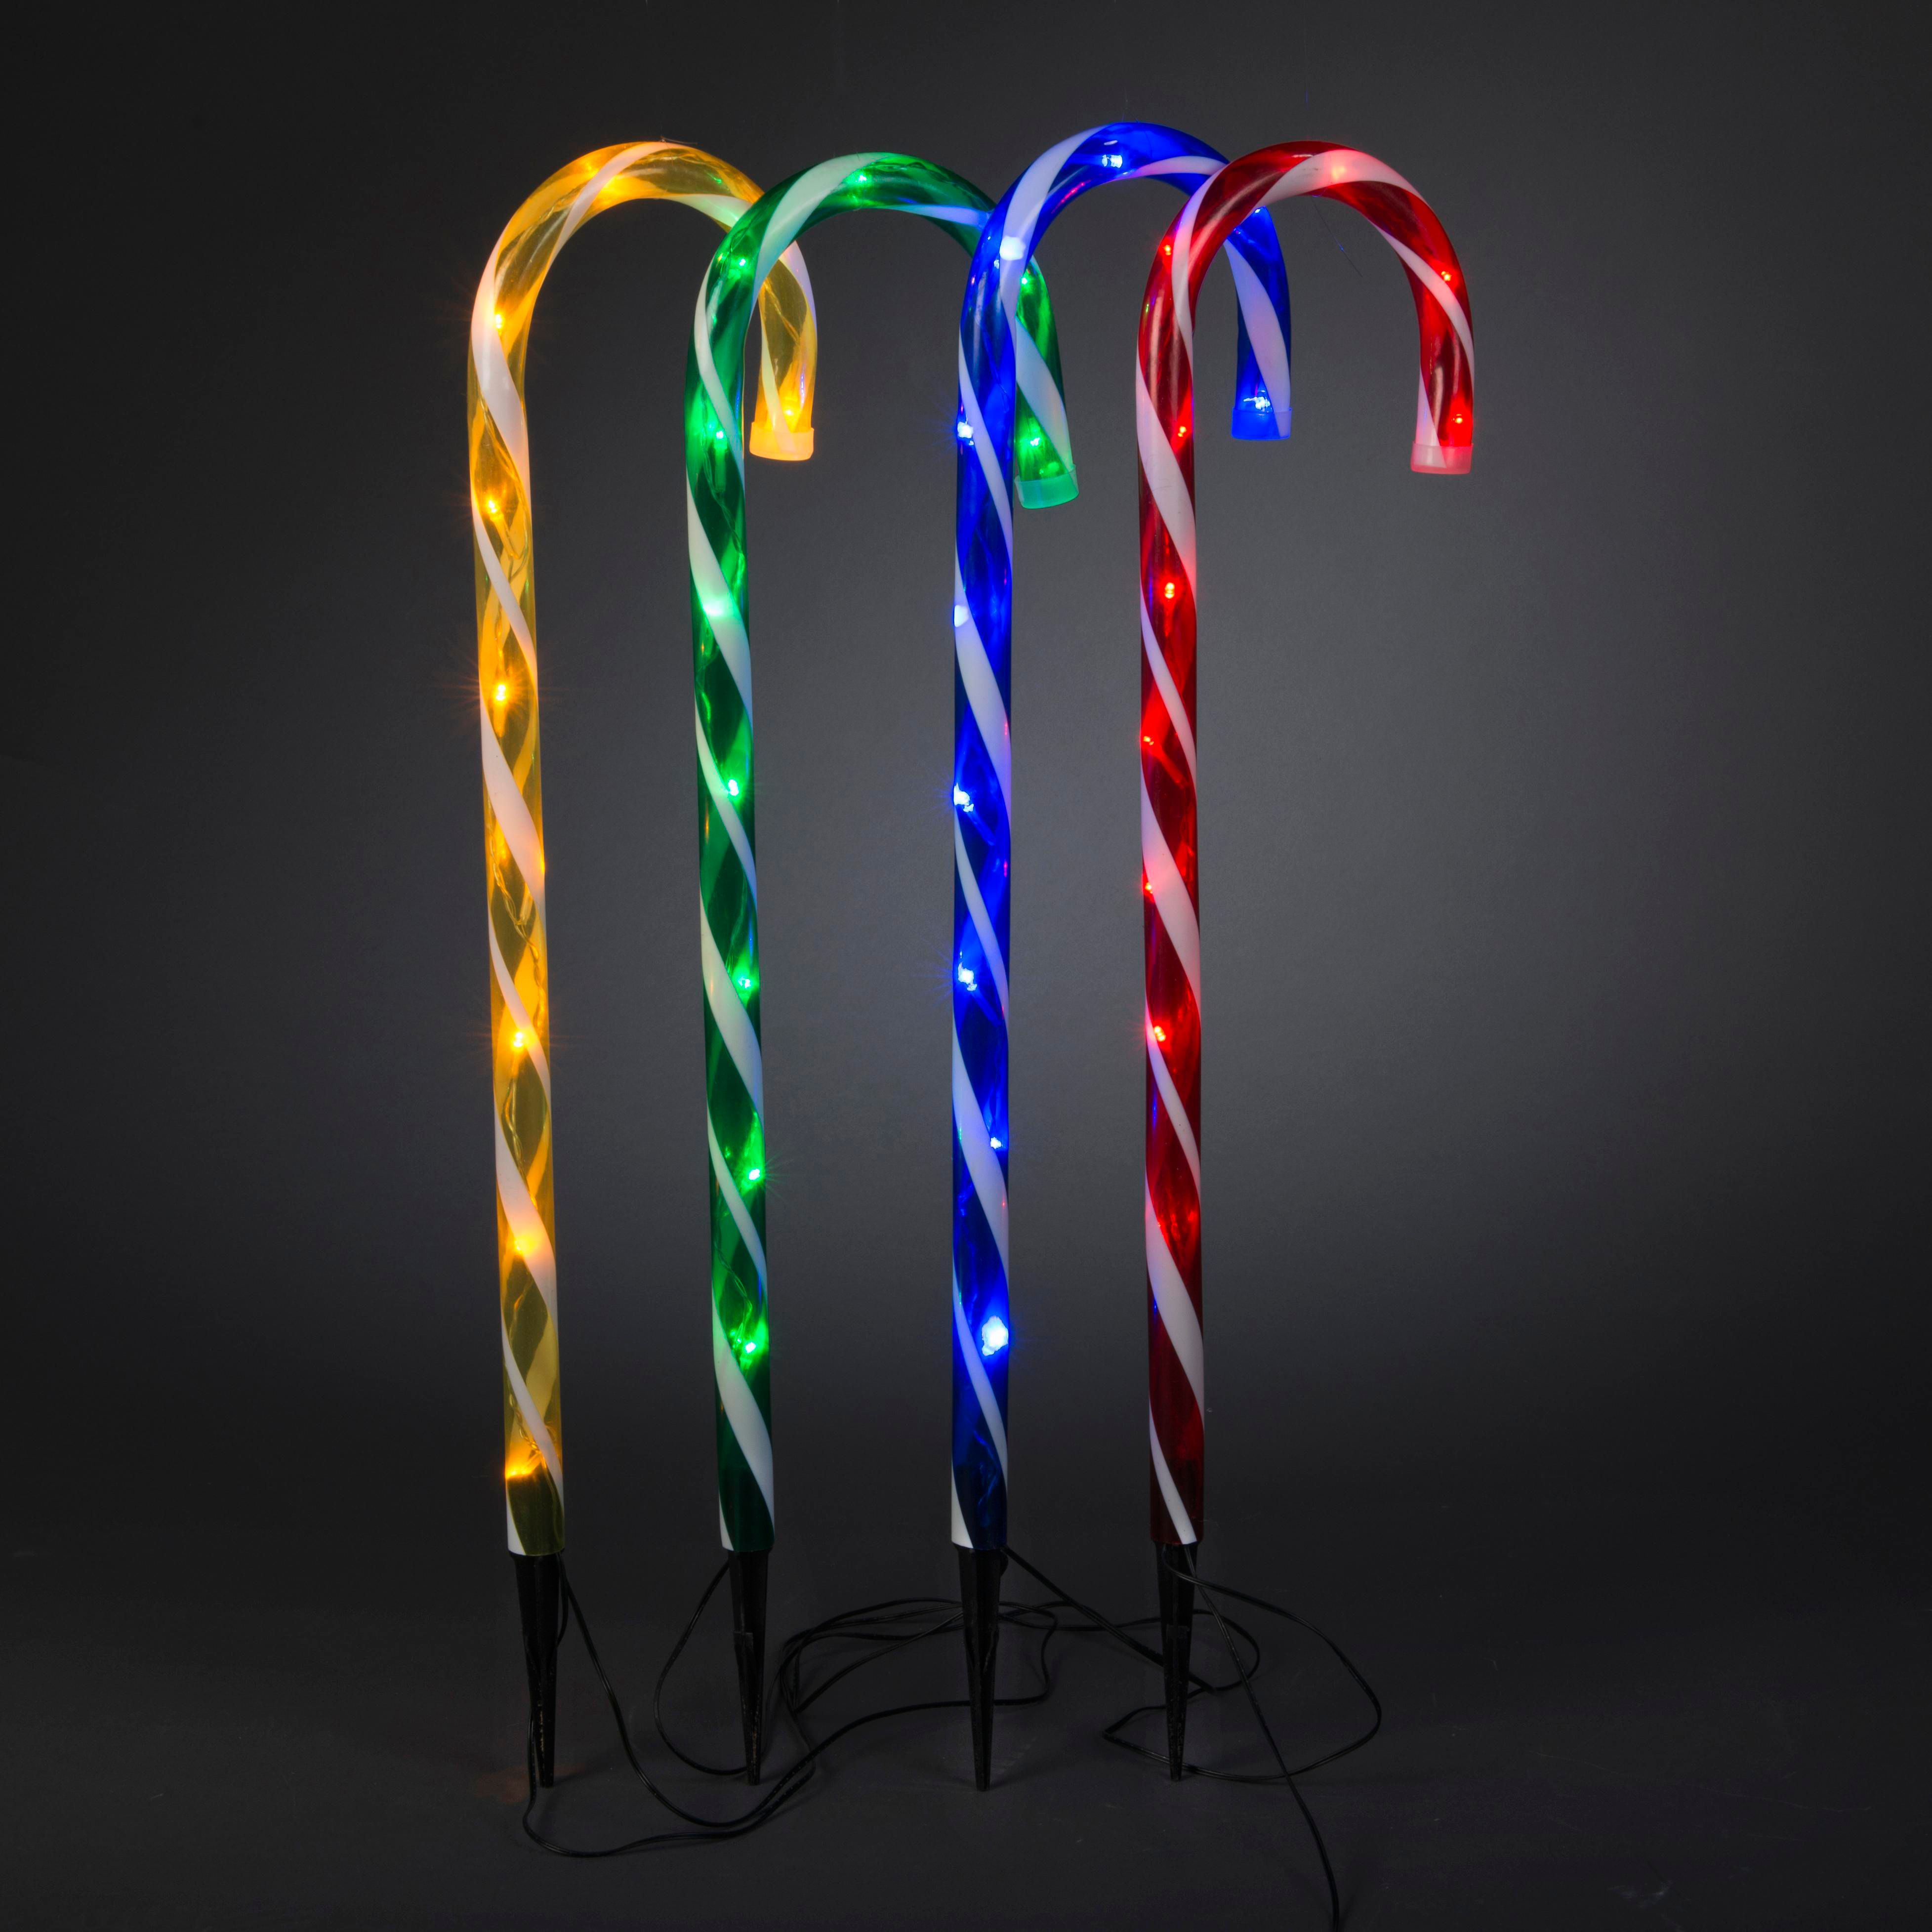 B&q Outdoor Xmas Lights Led candy cane stake lights pack of 4 departments diy at bq workwithnaturefo